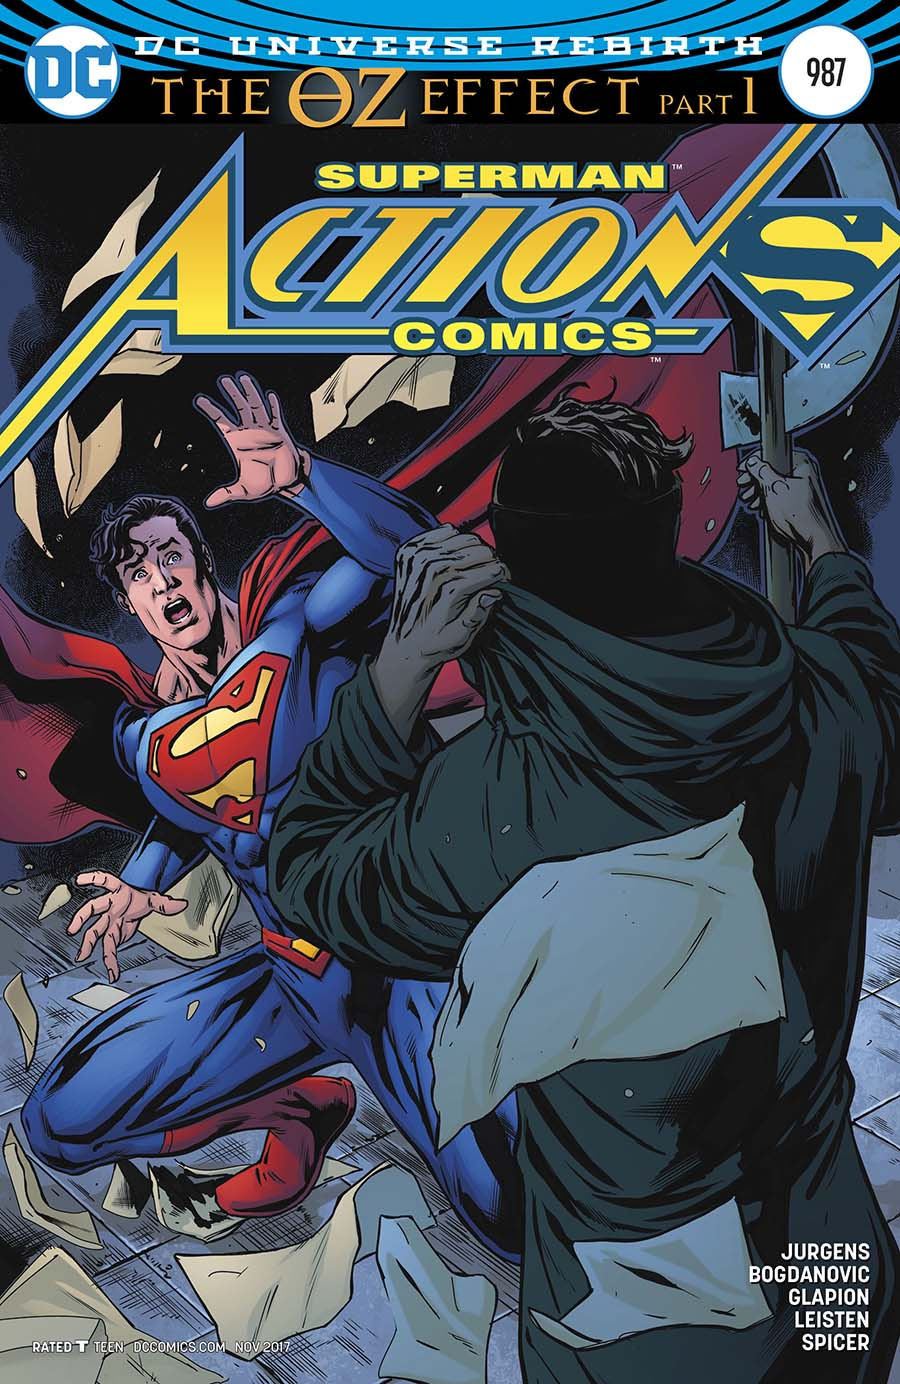 Action Comics Vol 2 #987 Cover C Variant Neil Edwards & Jay Leisten Cover